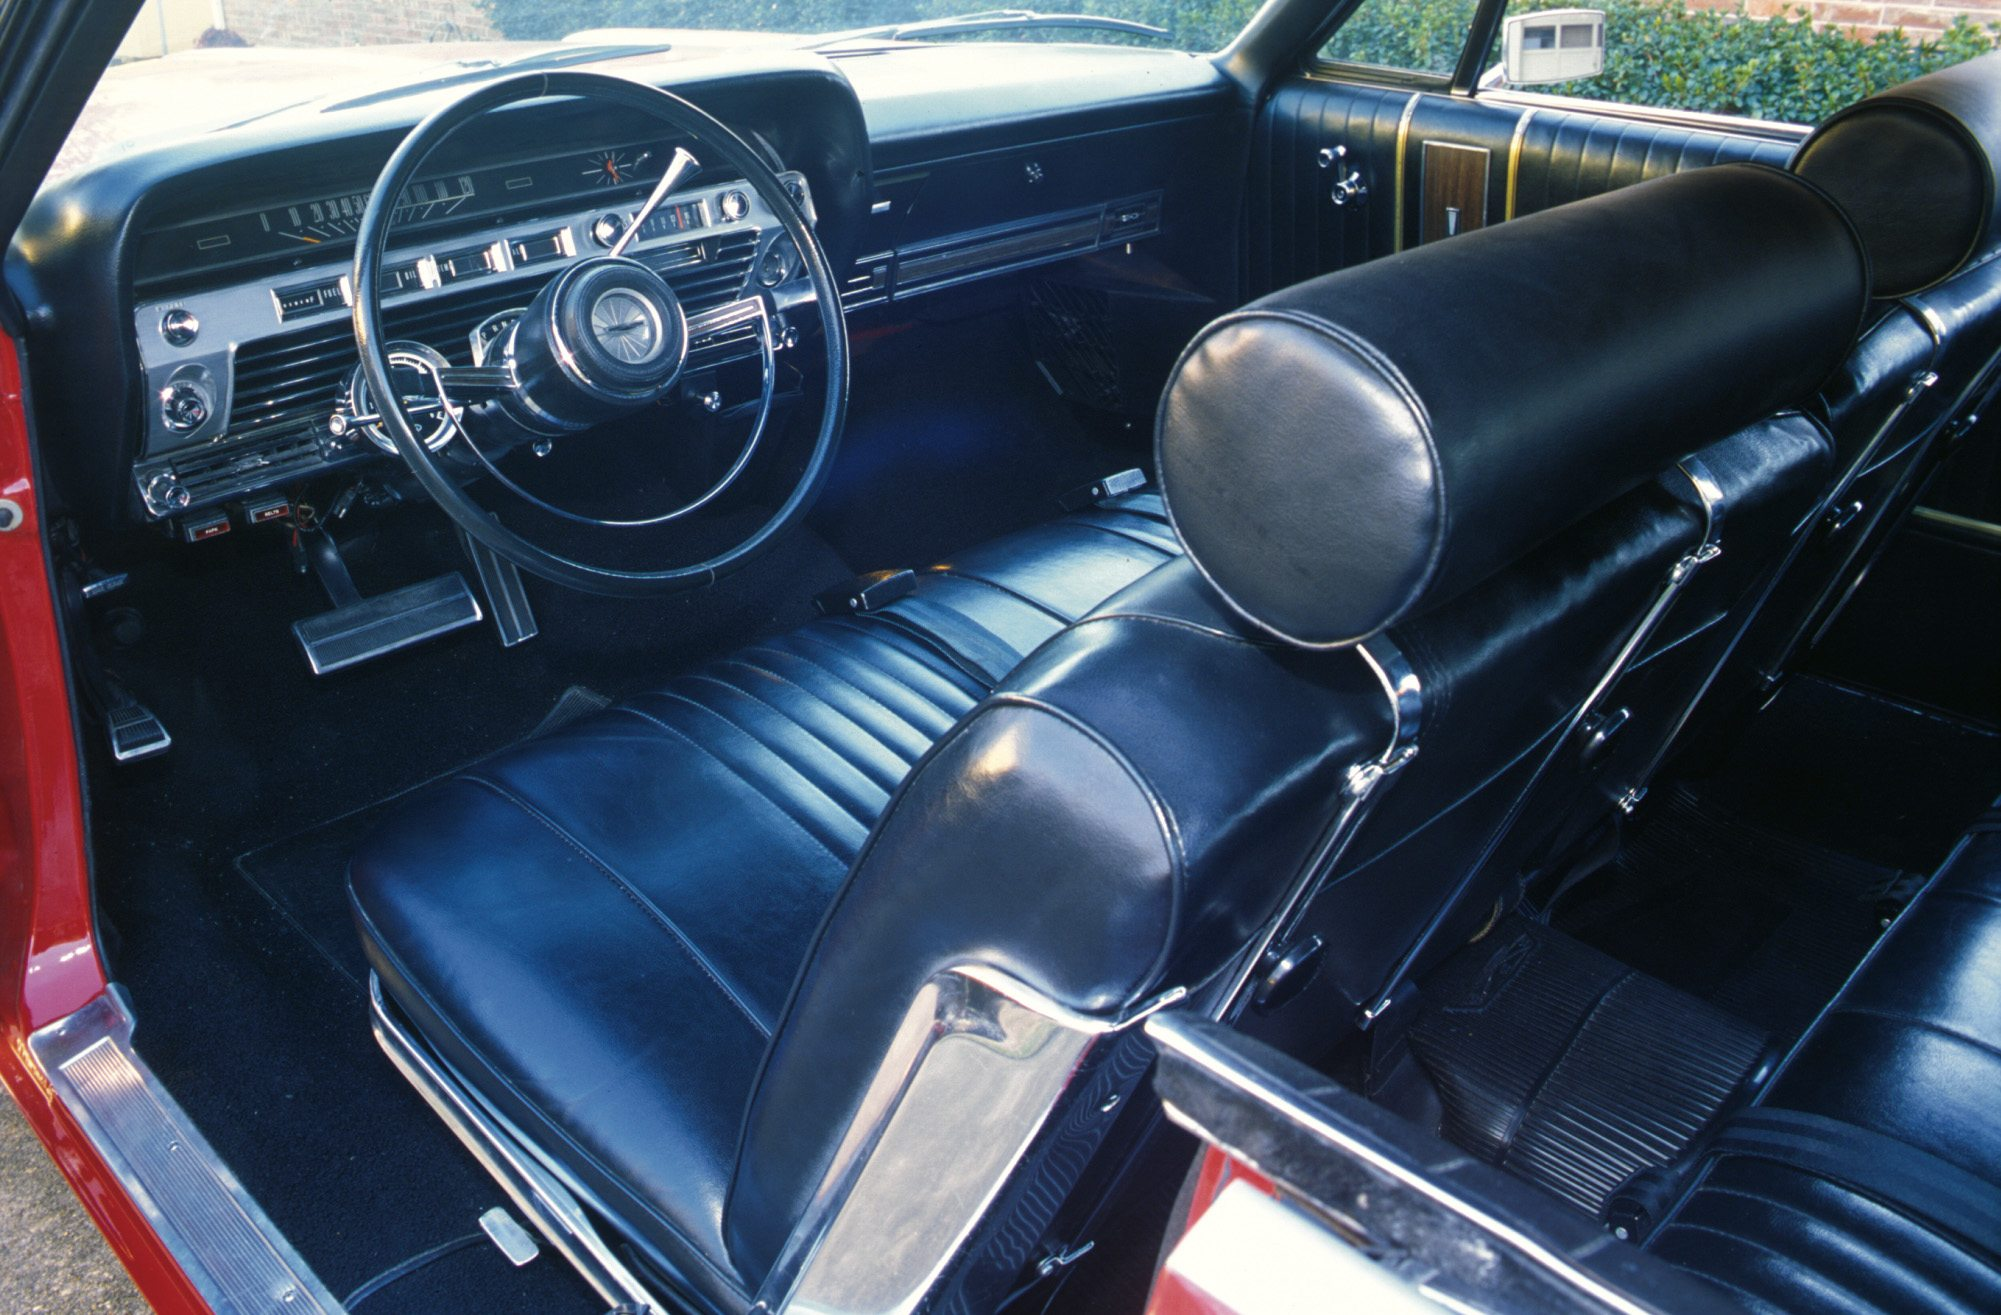 1967 Ford Galaxie 500 interior